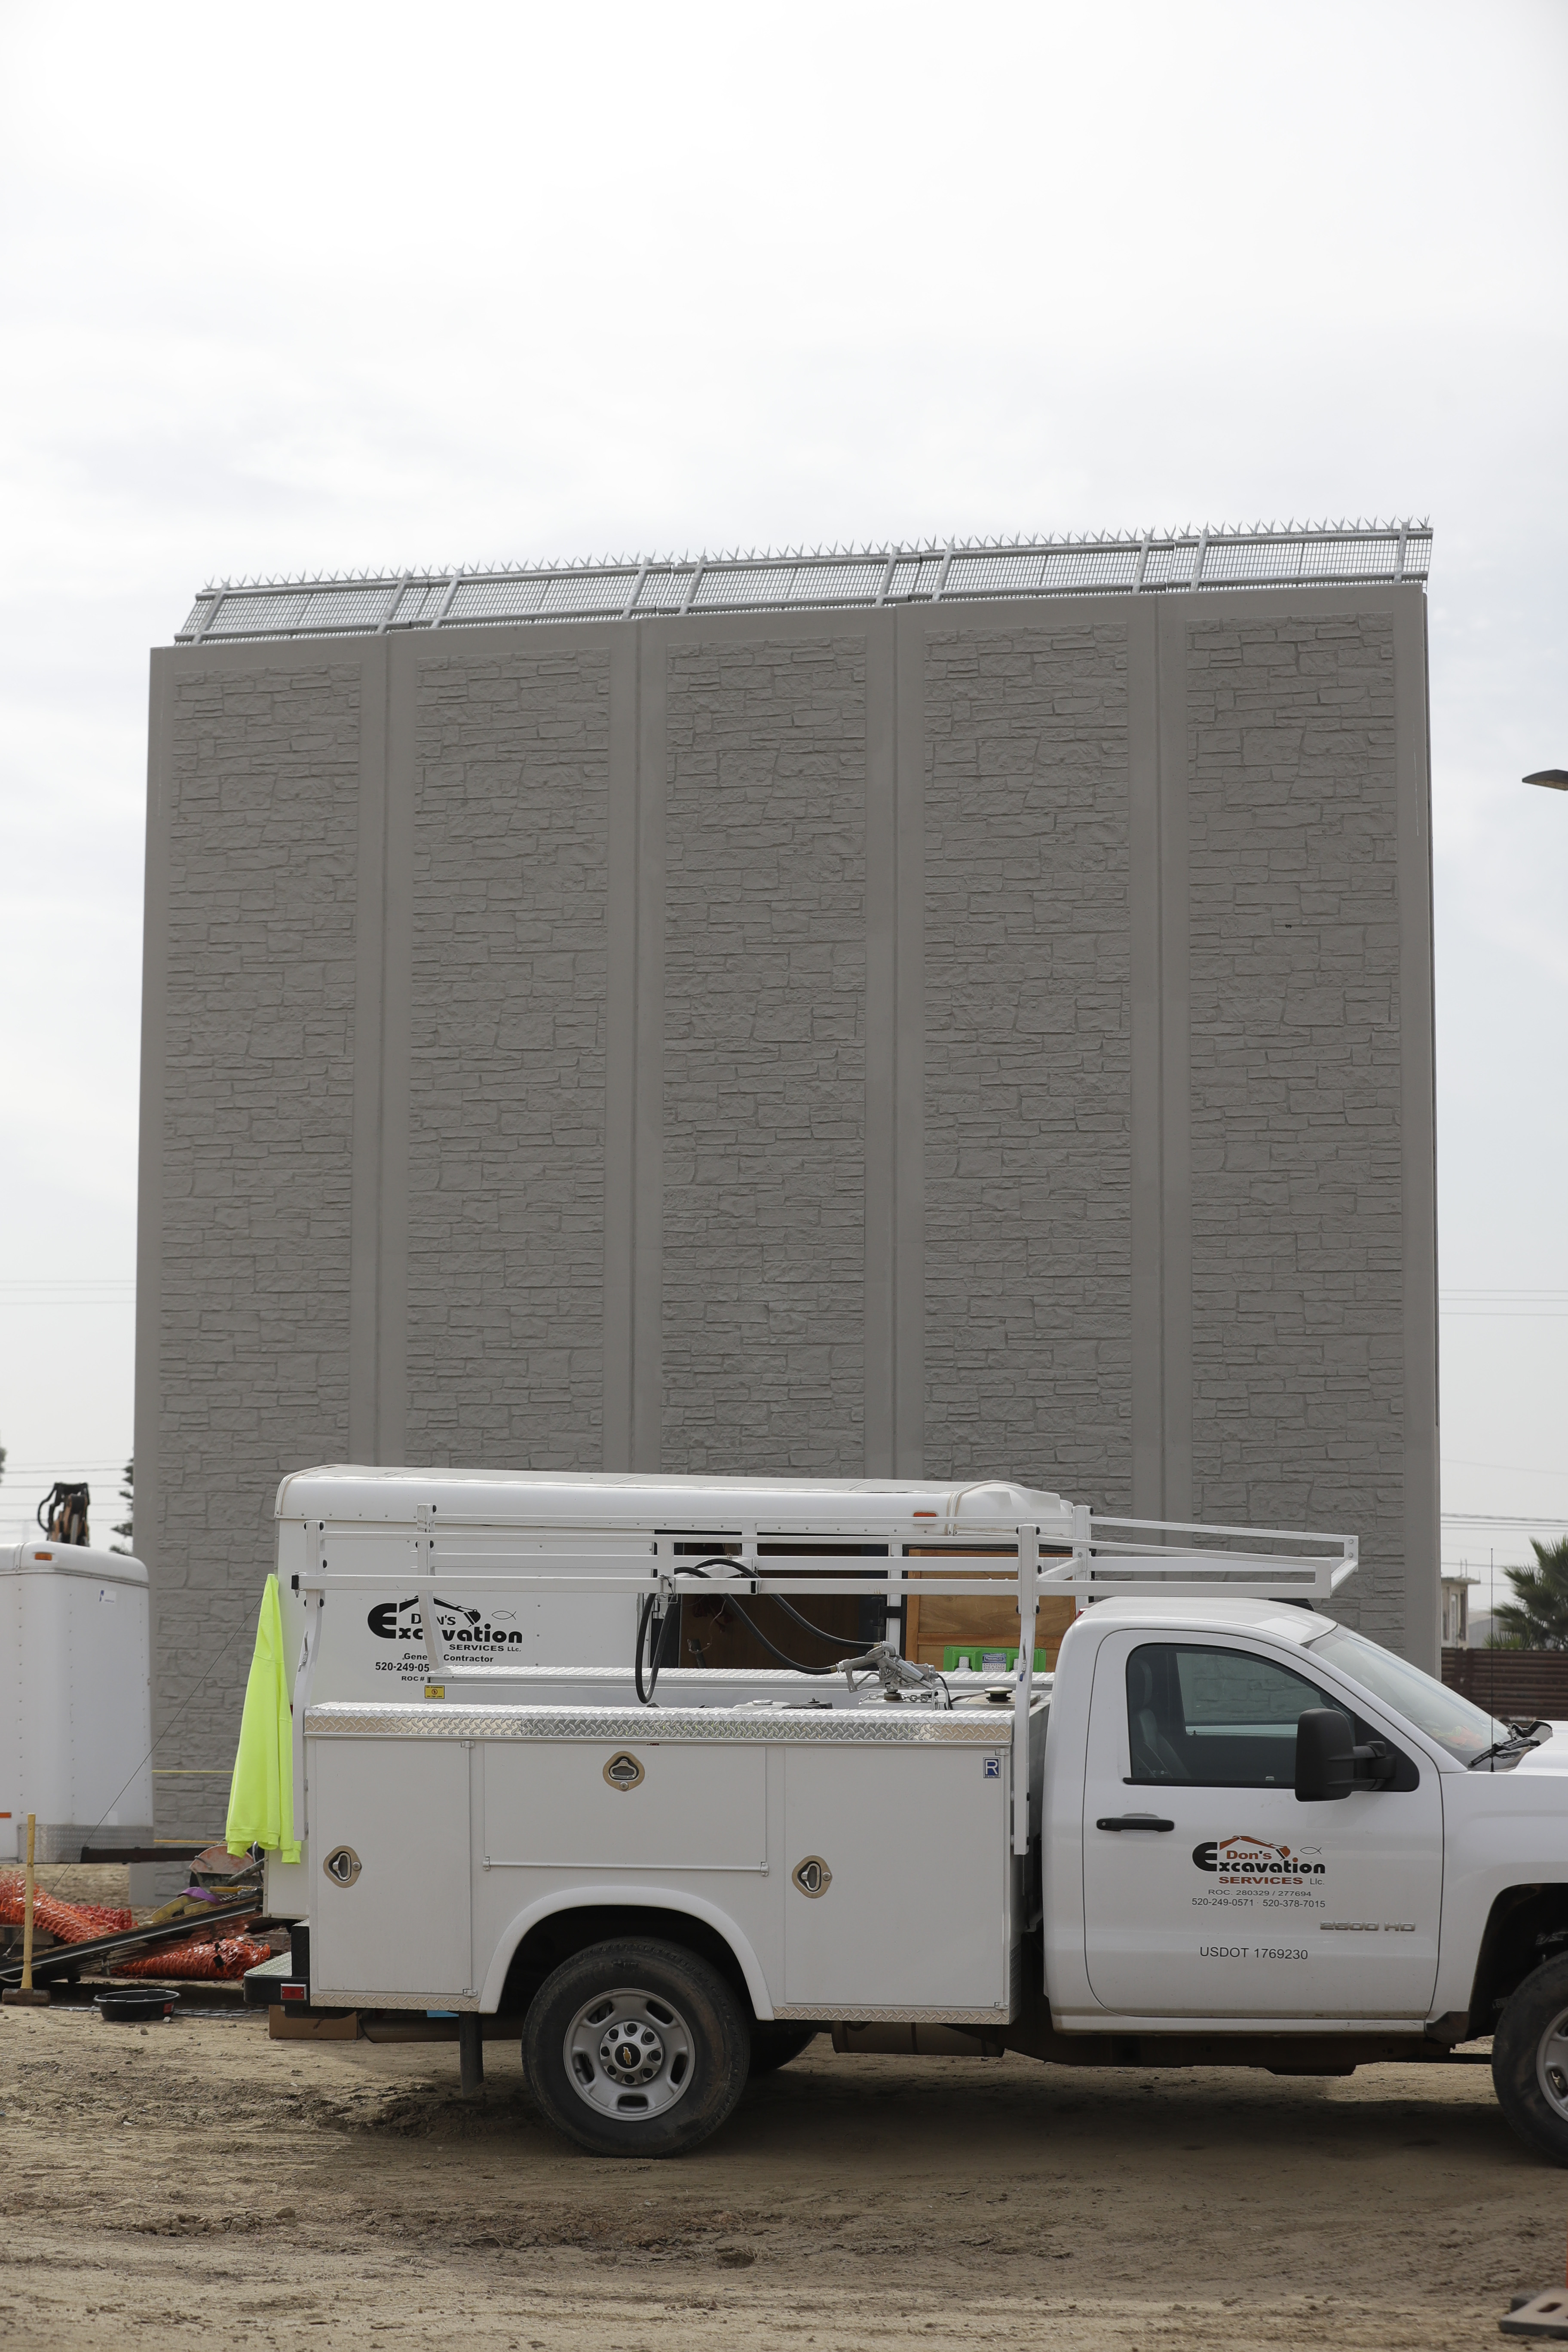 The wall by Texas Sterling Construction Company, based in Houston, Texas, has a contract value of $470,000. The gray surface of the U.S. side is stamped with patterns of different-sized bricks, like a driveway or sidewalk at an upscale home. There is a steel plate on top with prongs that feature at three metal spikes, resembling an agave plant. (Gregory Bull/AP)